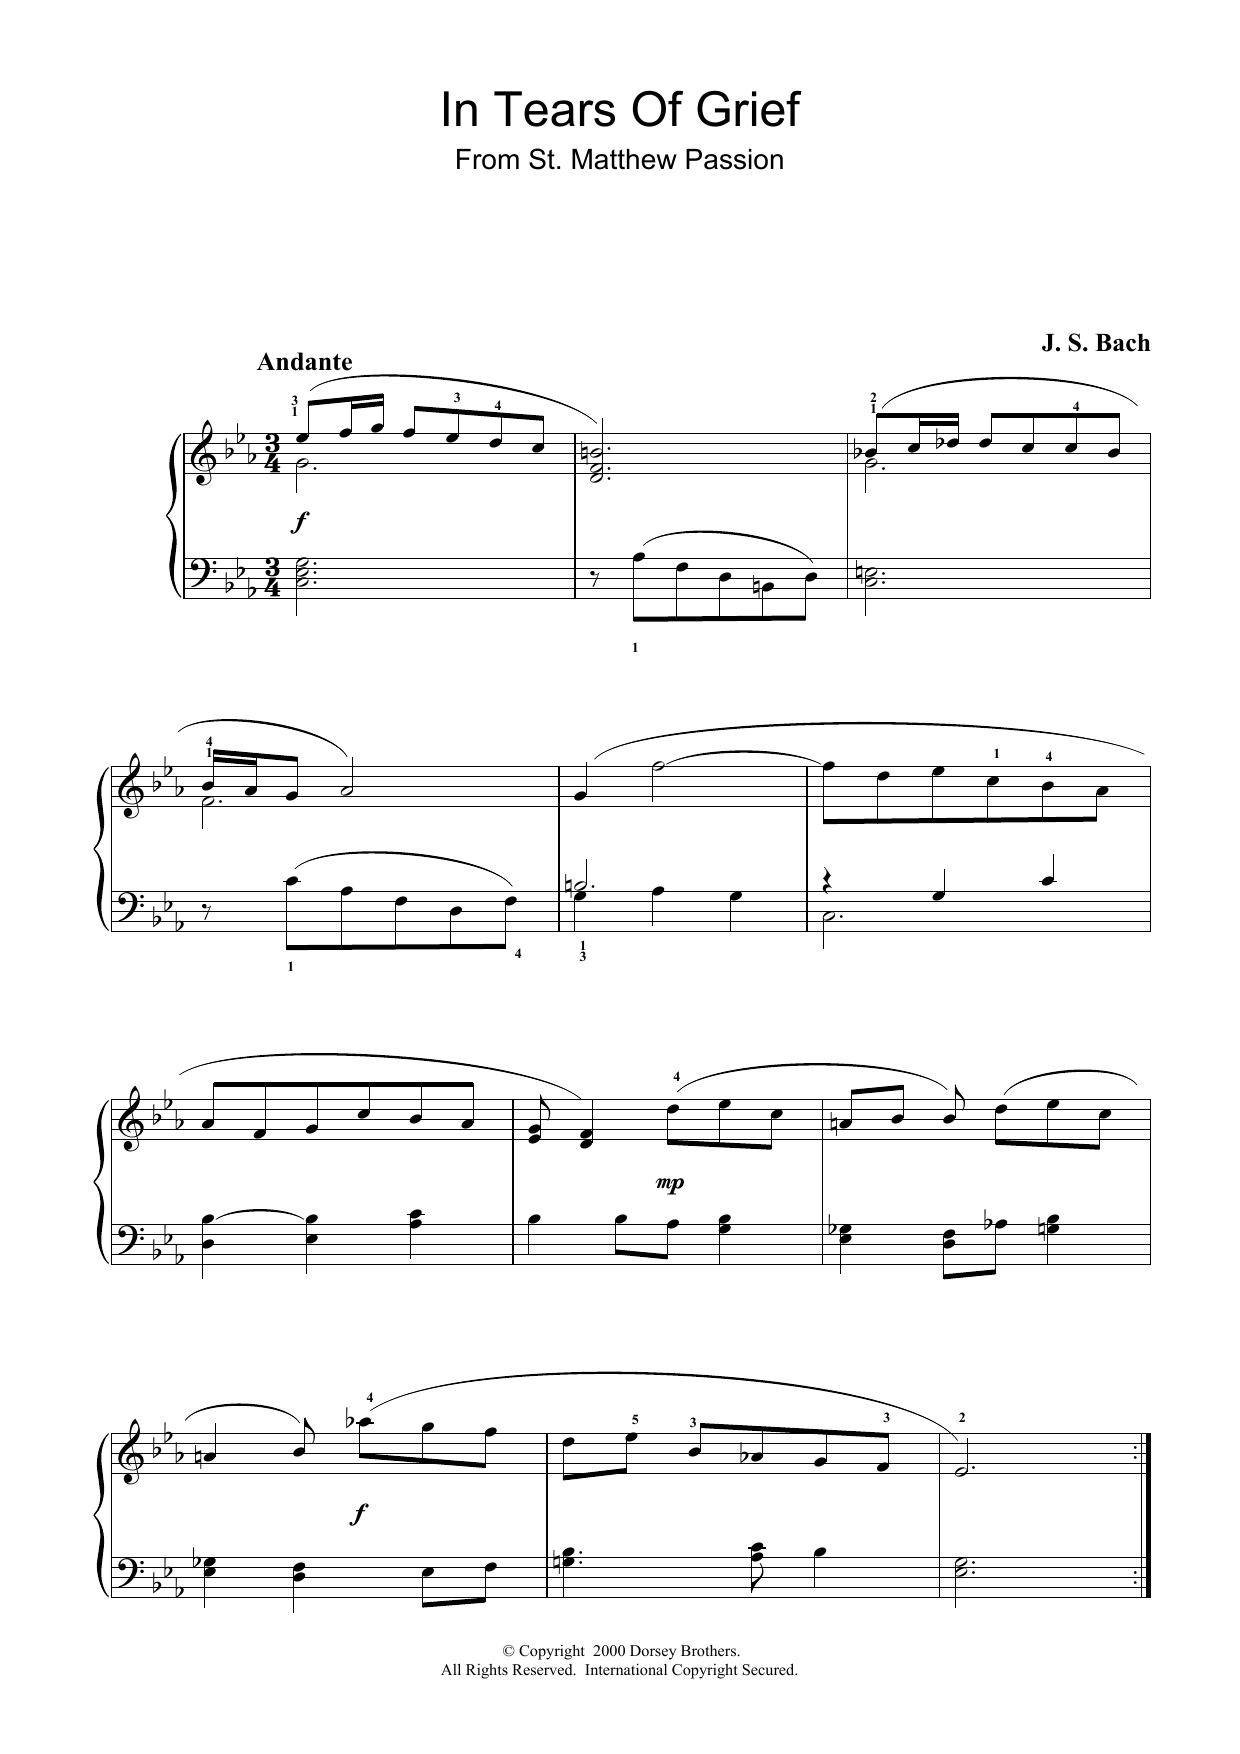 In Tears Of Grief (from St Matthew Passion) sheet music